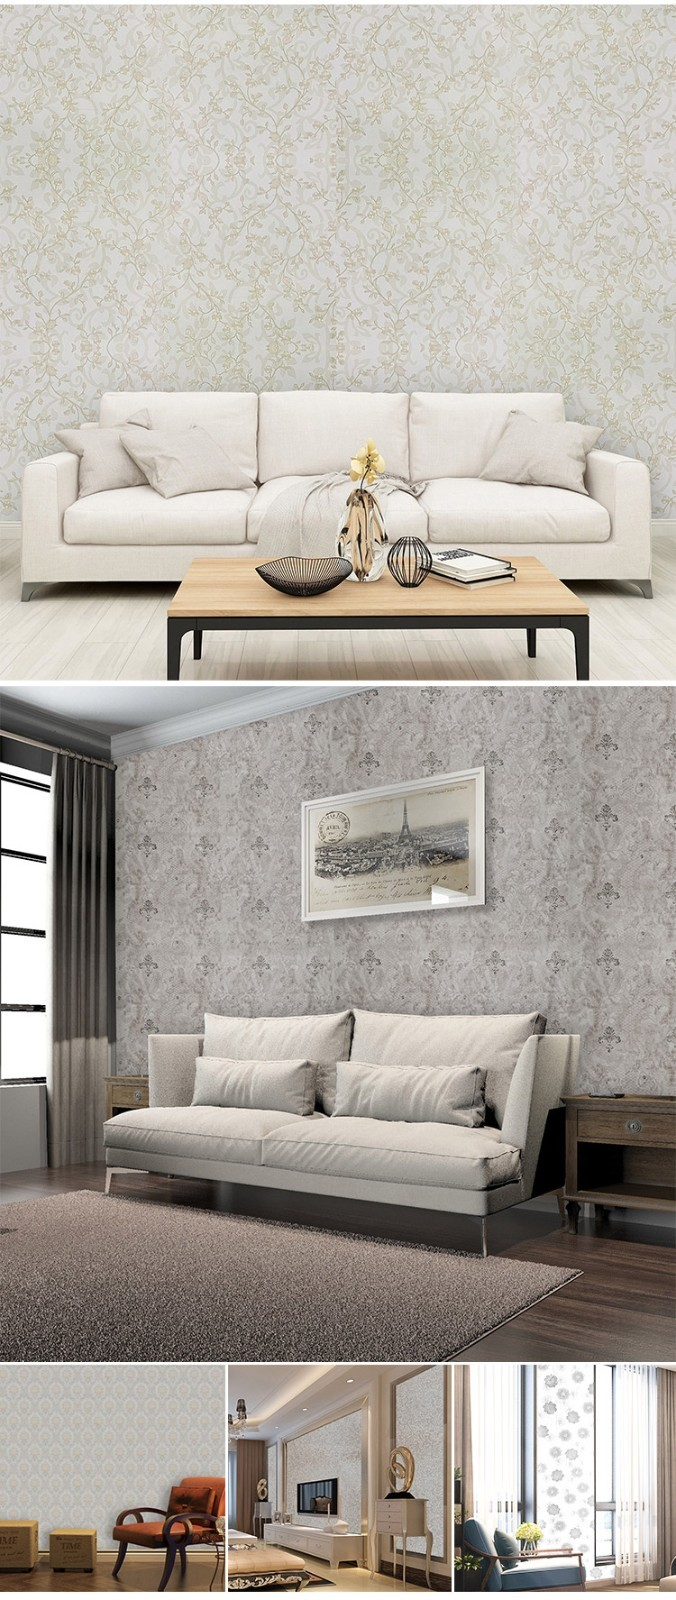 SUNYE vinyl wall covering factory direct supply for heating